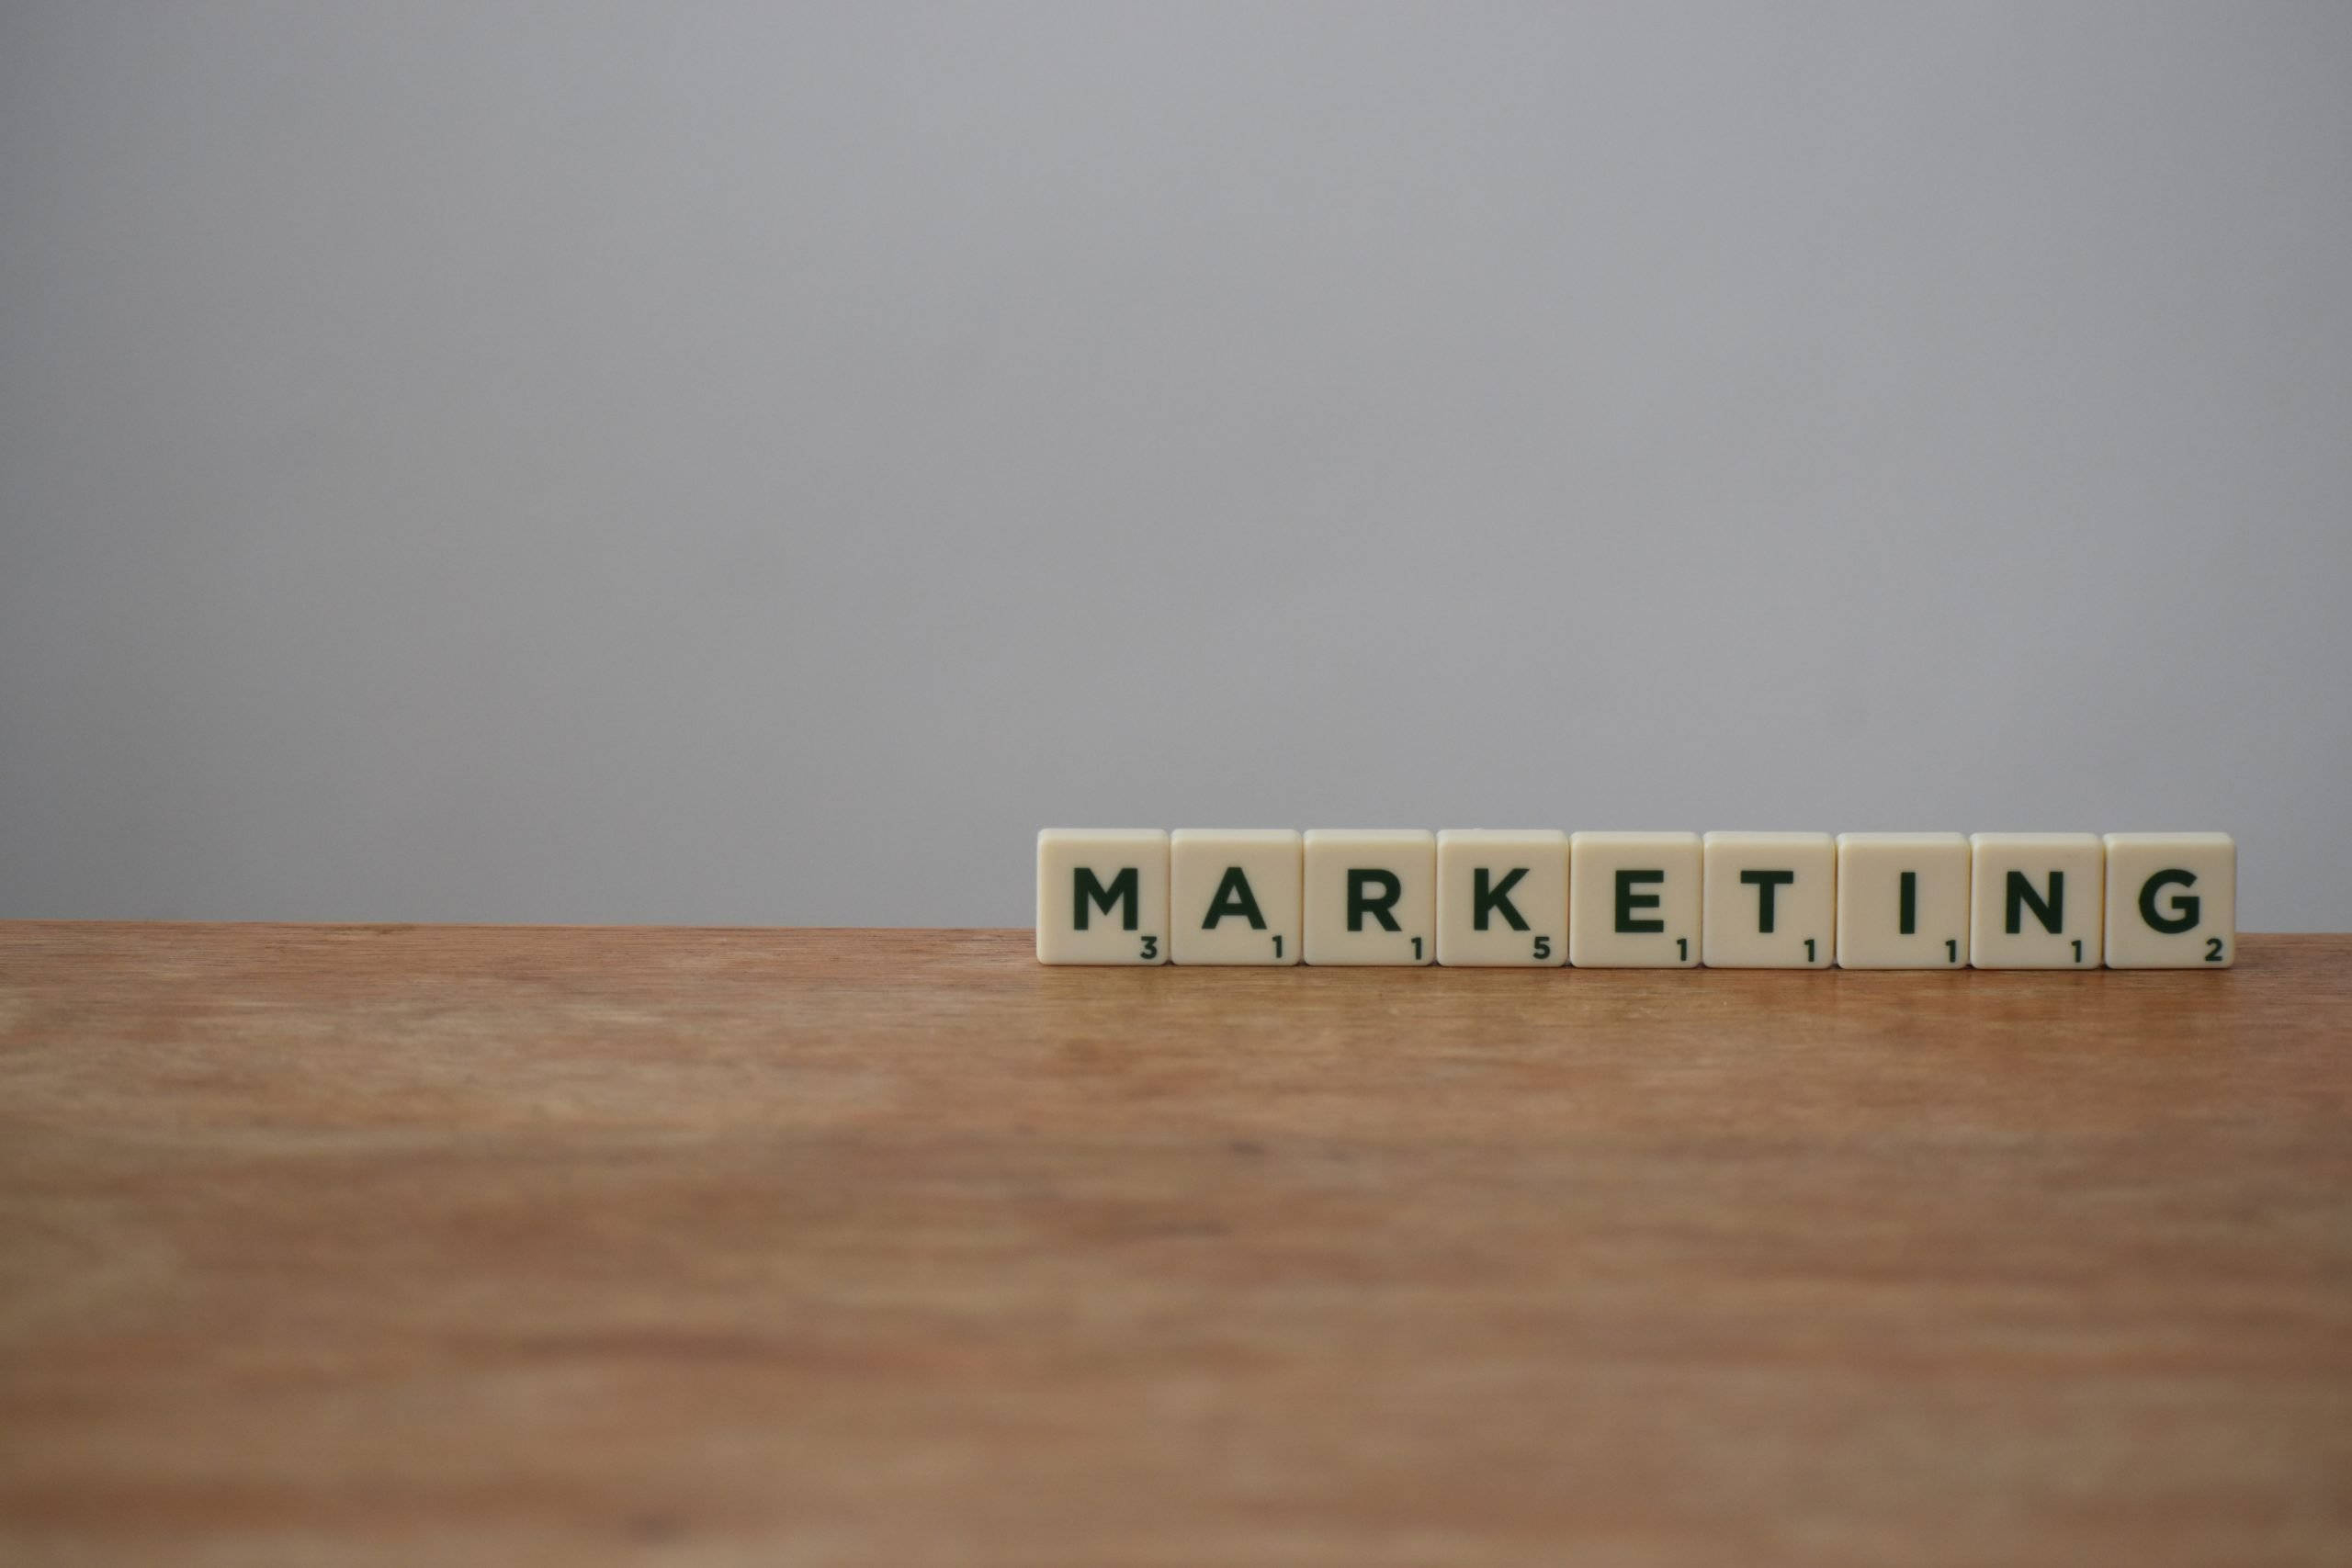 Advertising: Saivian Eric Dalius Shares 7 Marketing Secrets for Growing Your SMB Business